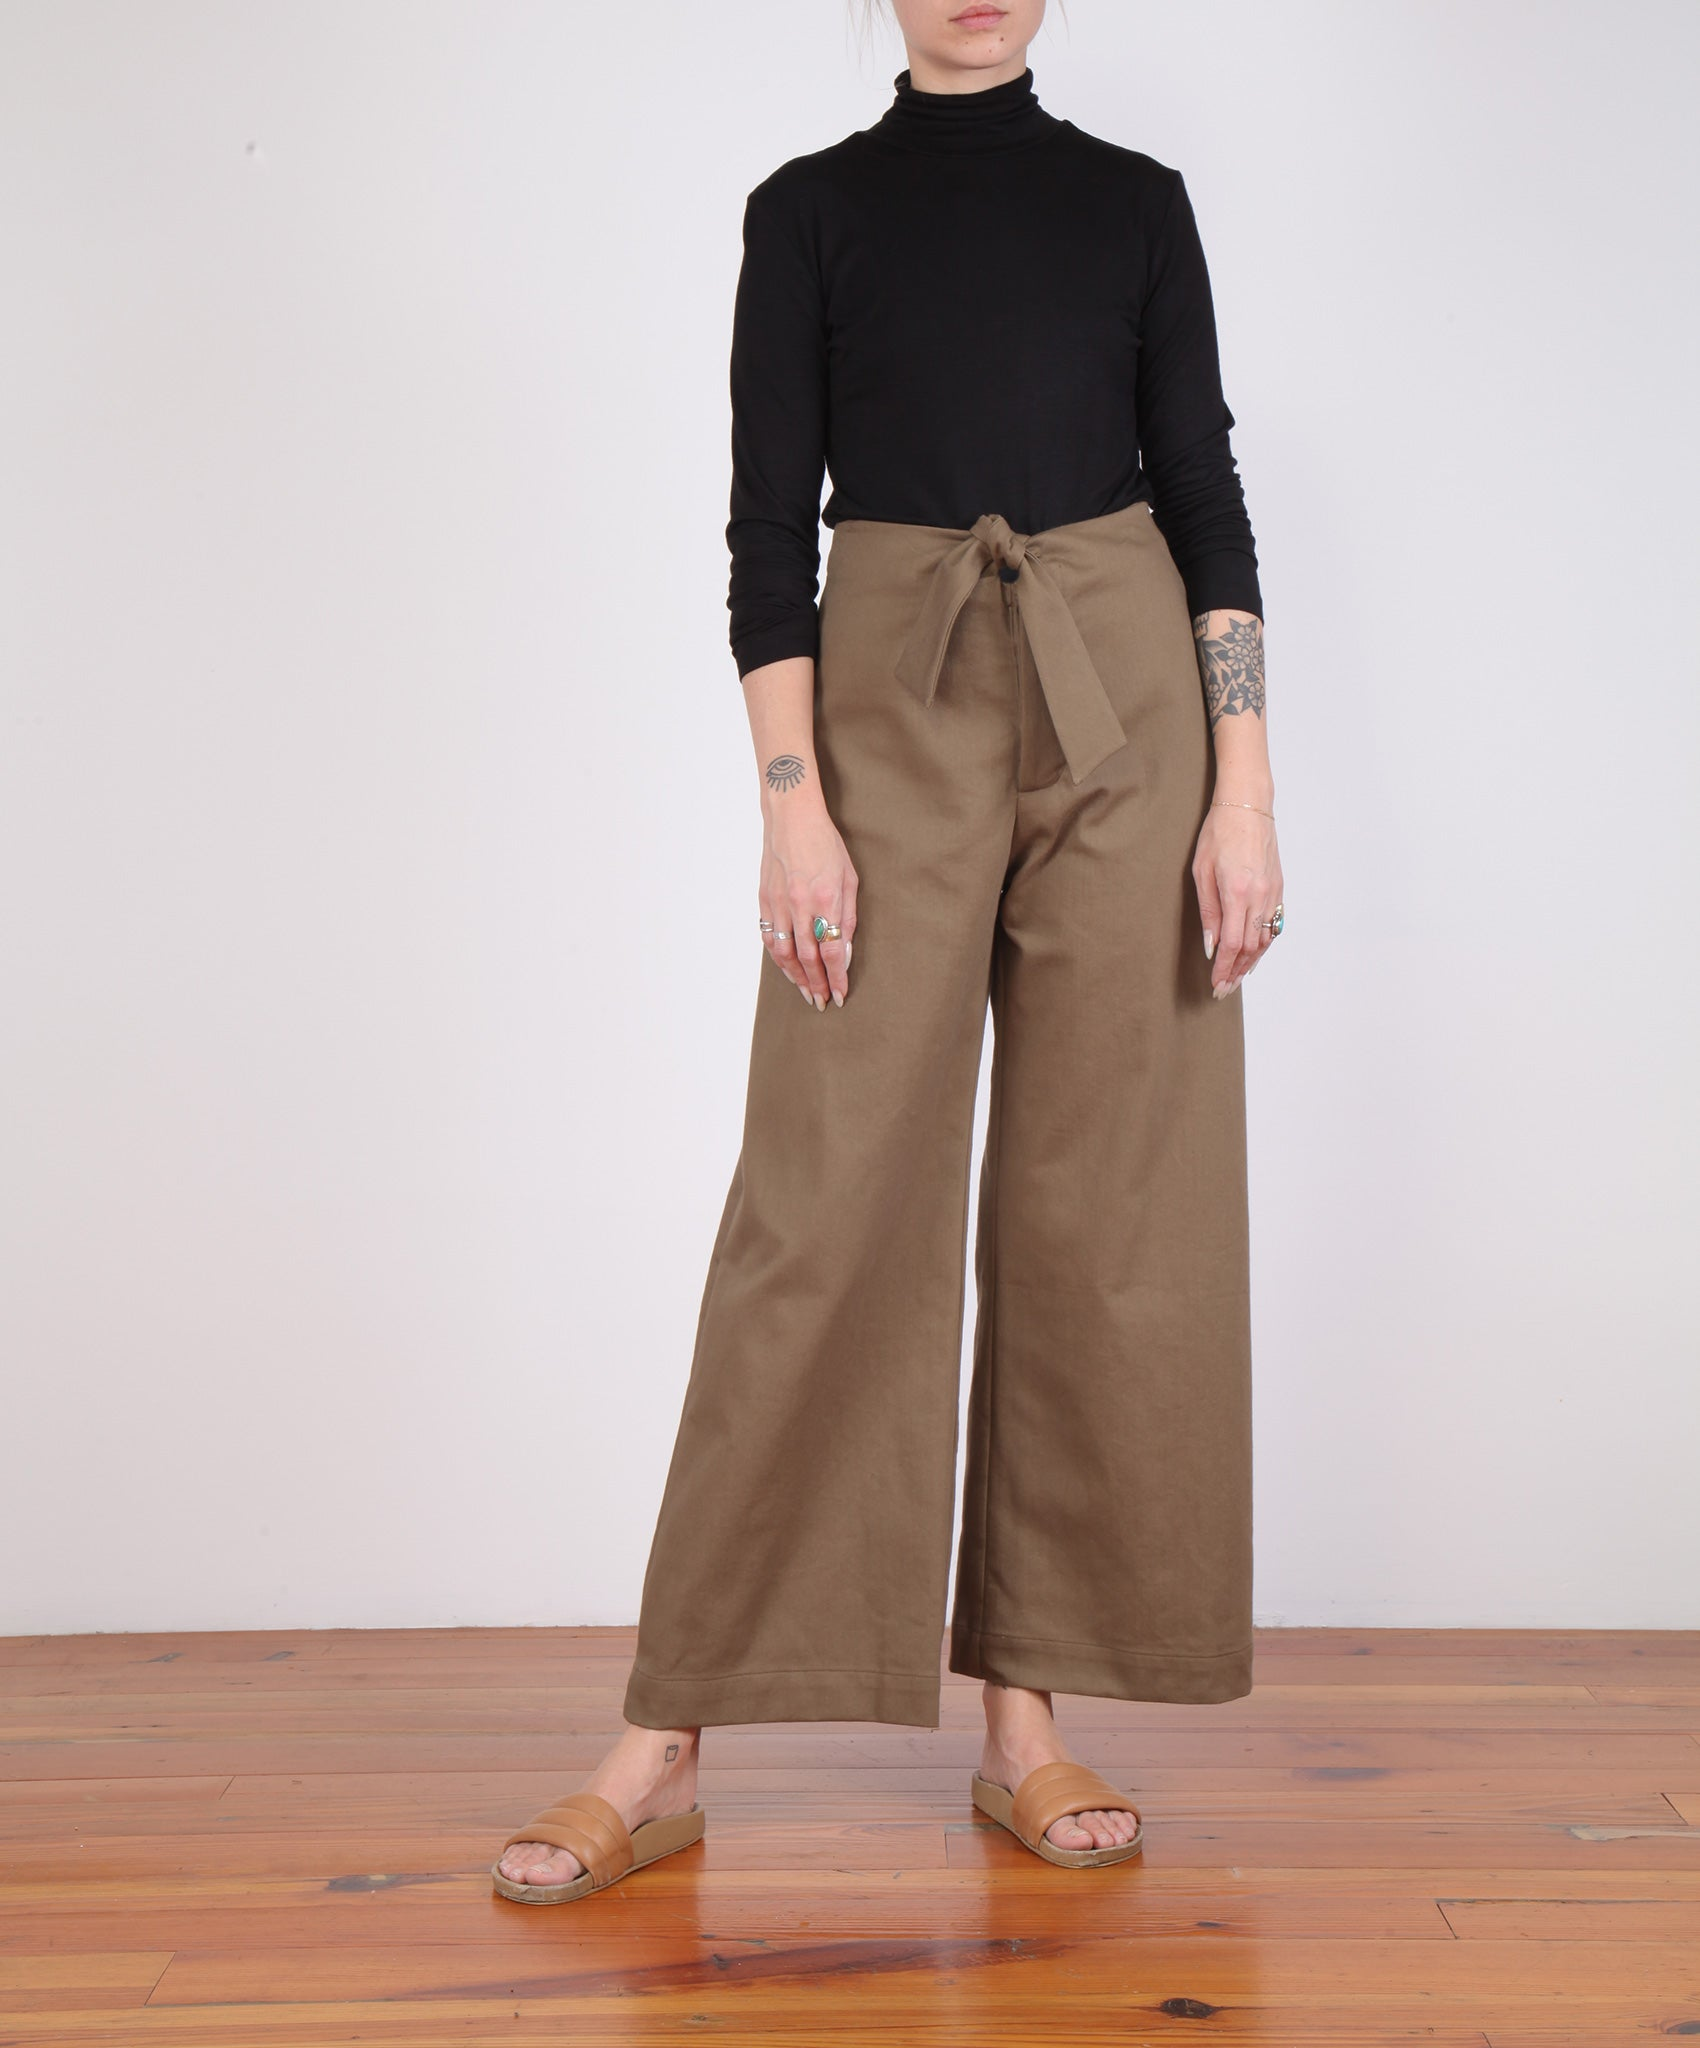 Micaela Greg-Knotted Sailor Pant